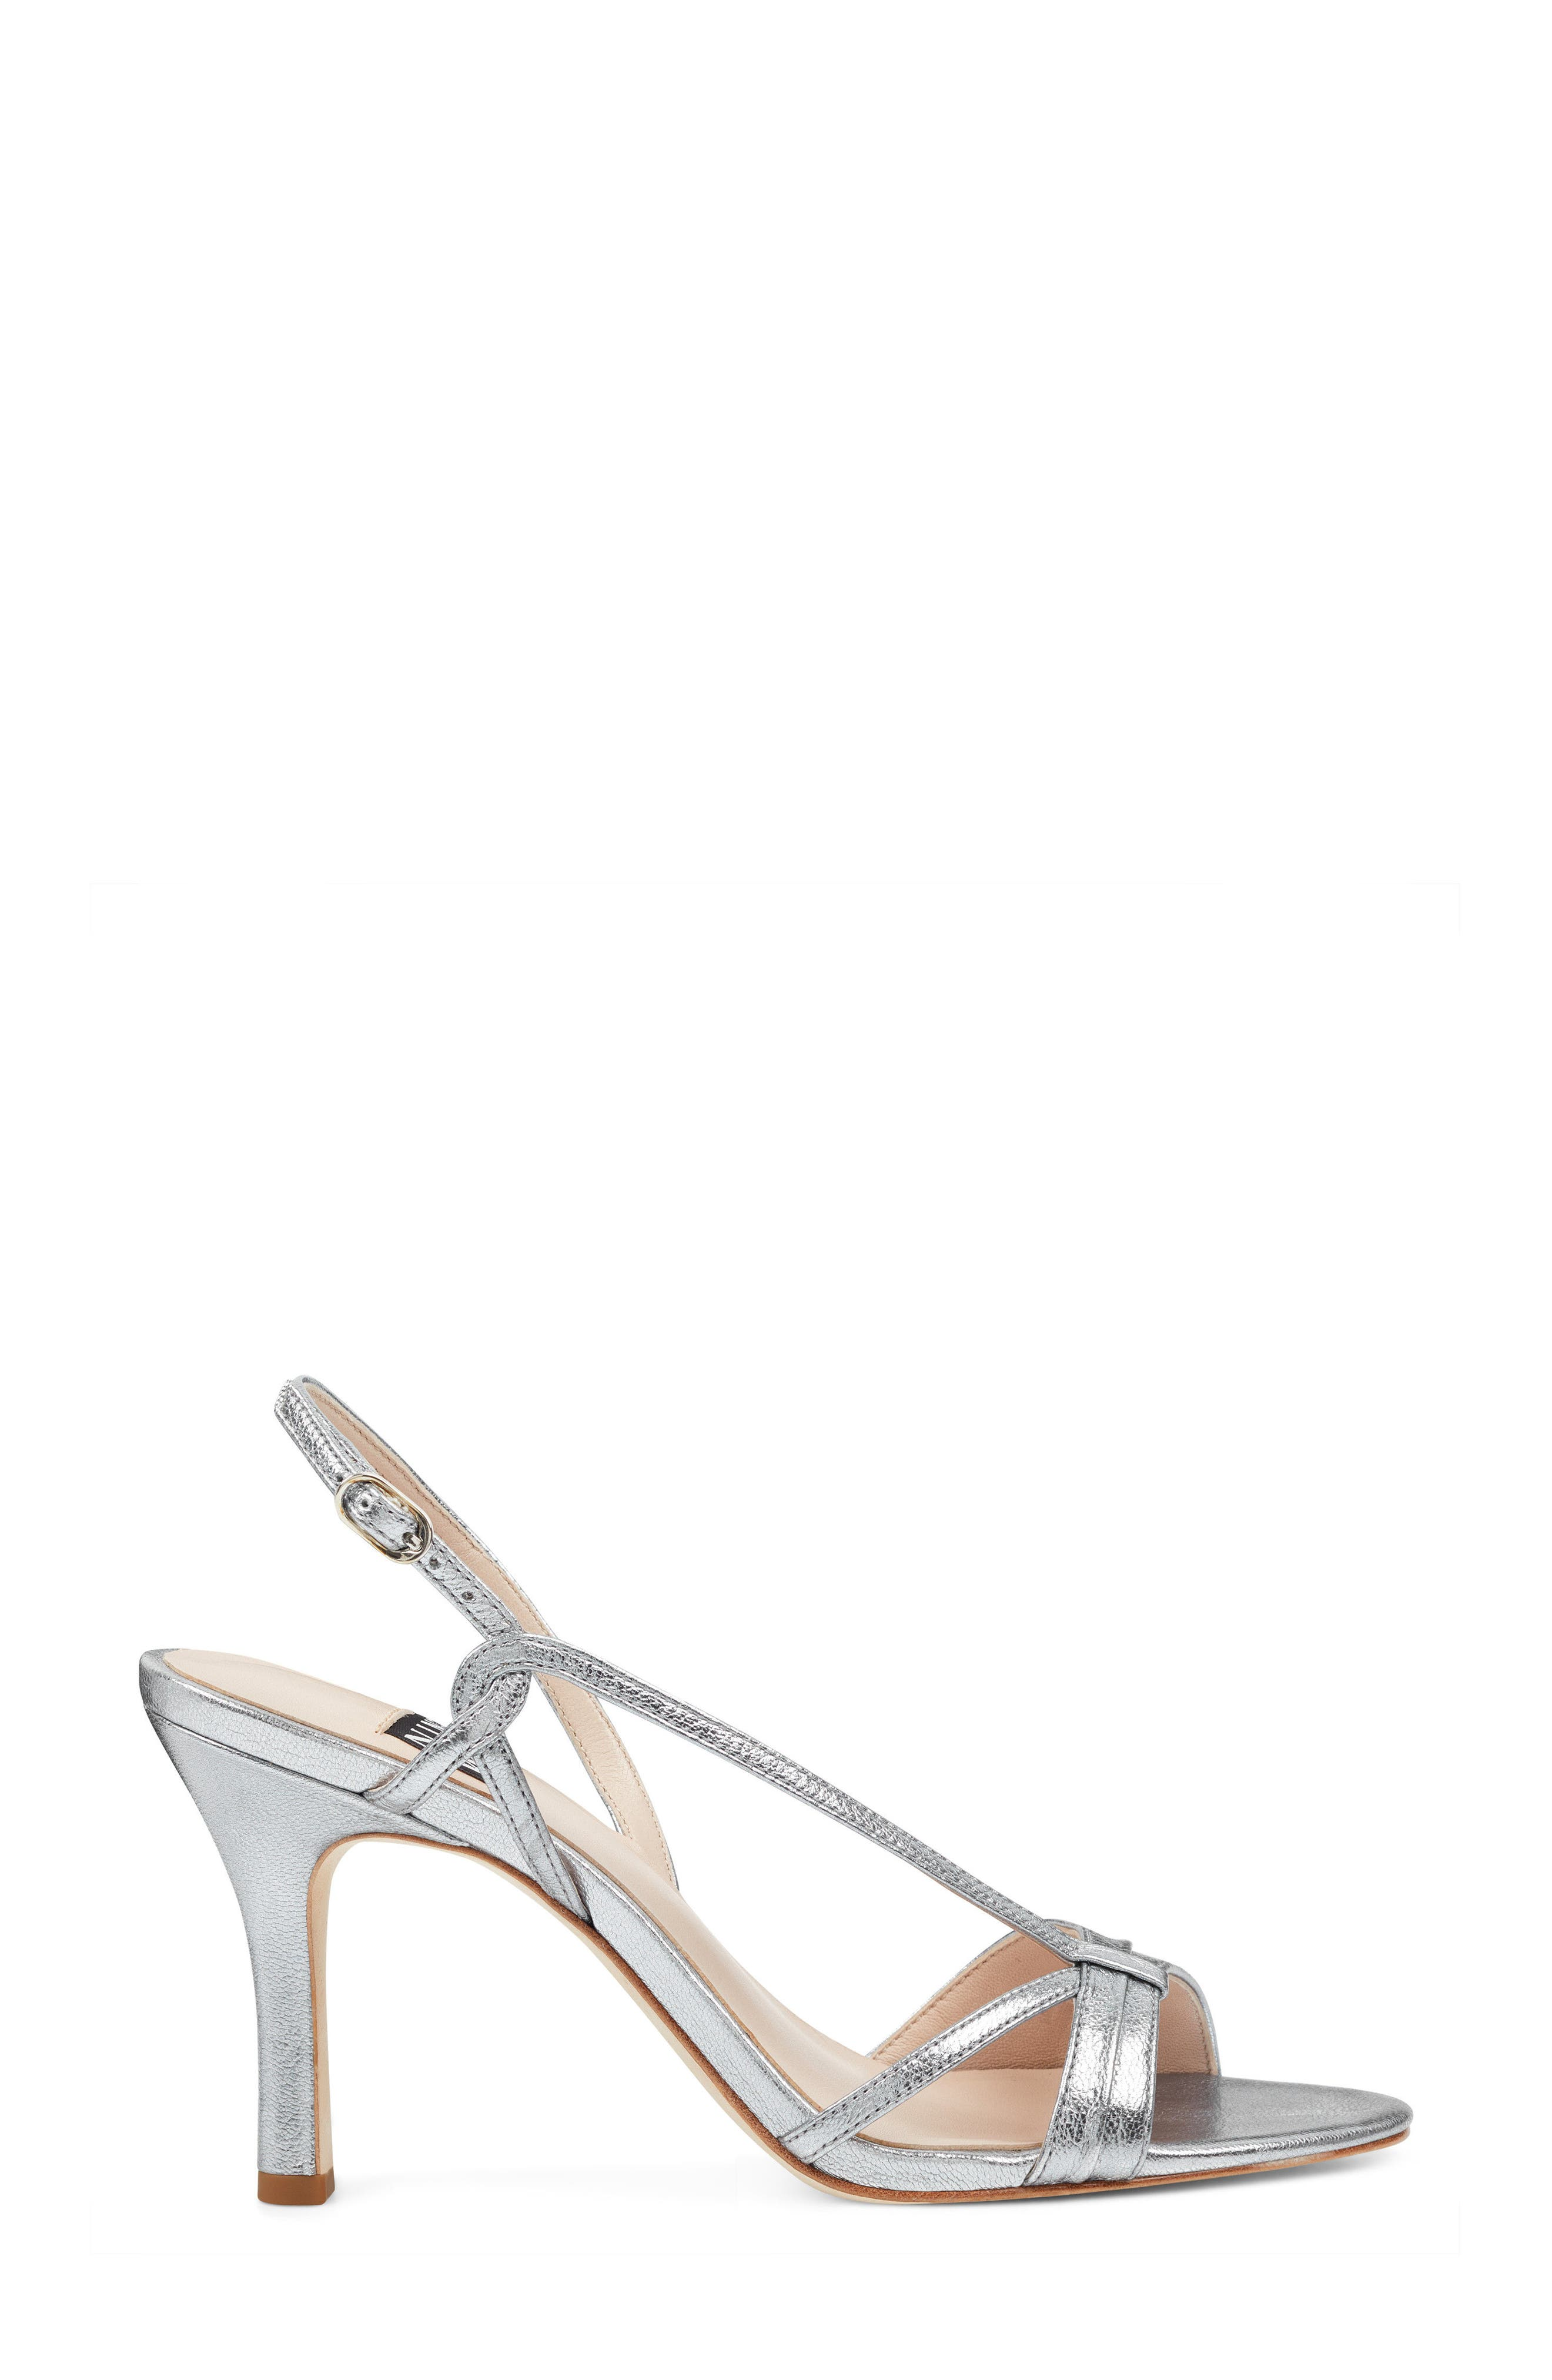 Accolia - 40th Anniversary Capsule Collection Sandal,                             Alternate thumbnail 3, color,                             SILVER LEATHER